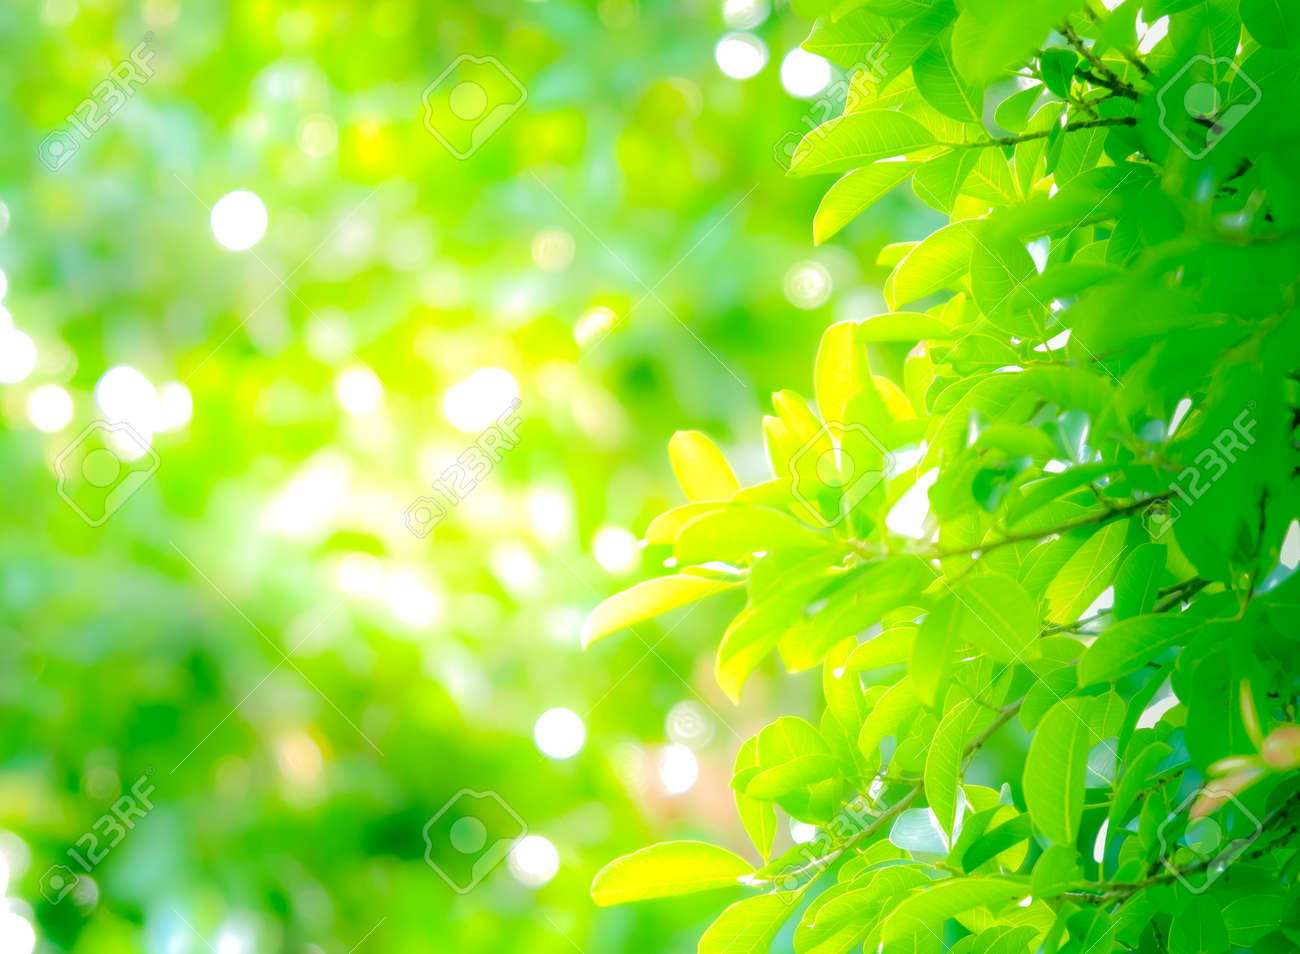 Close Up Beautiful Natural View Green Leaves With Sunlight On